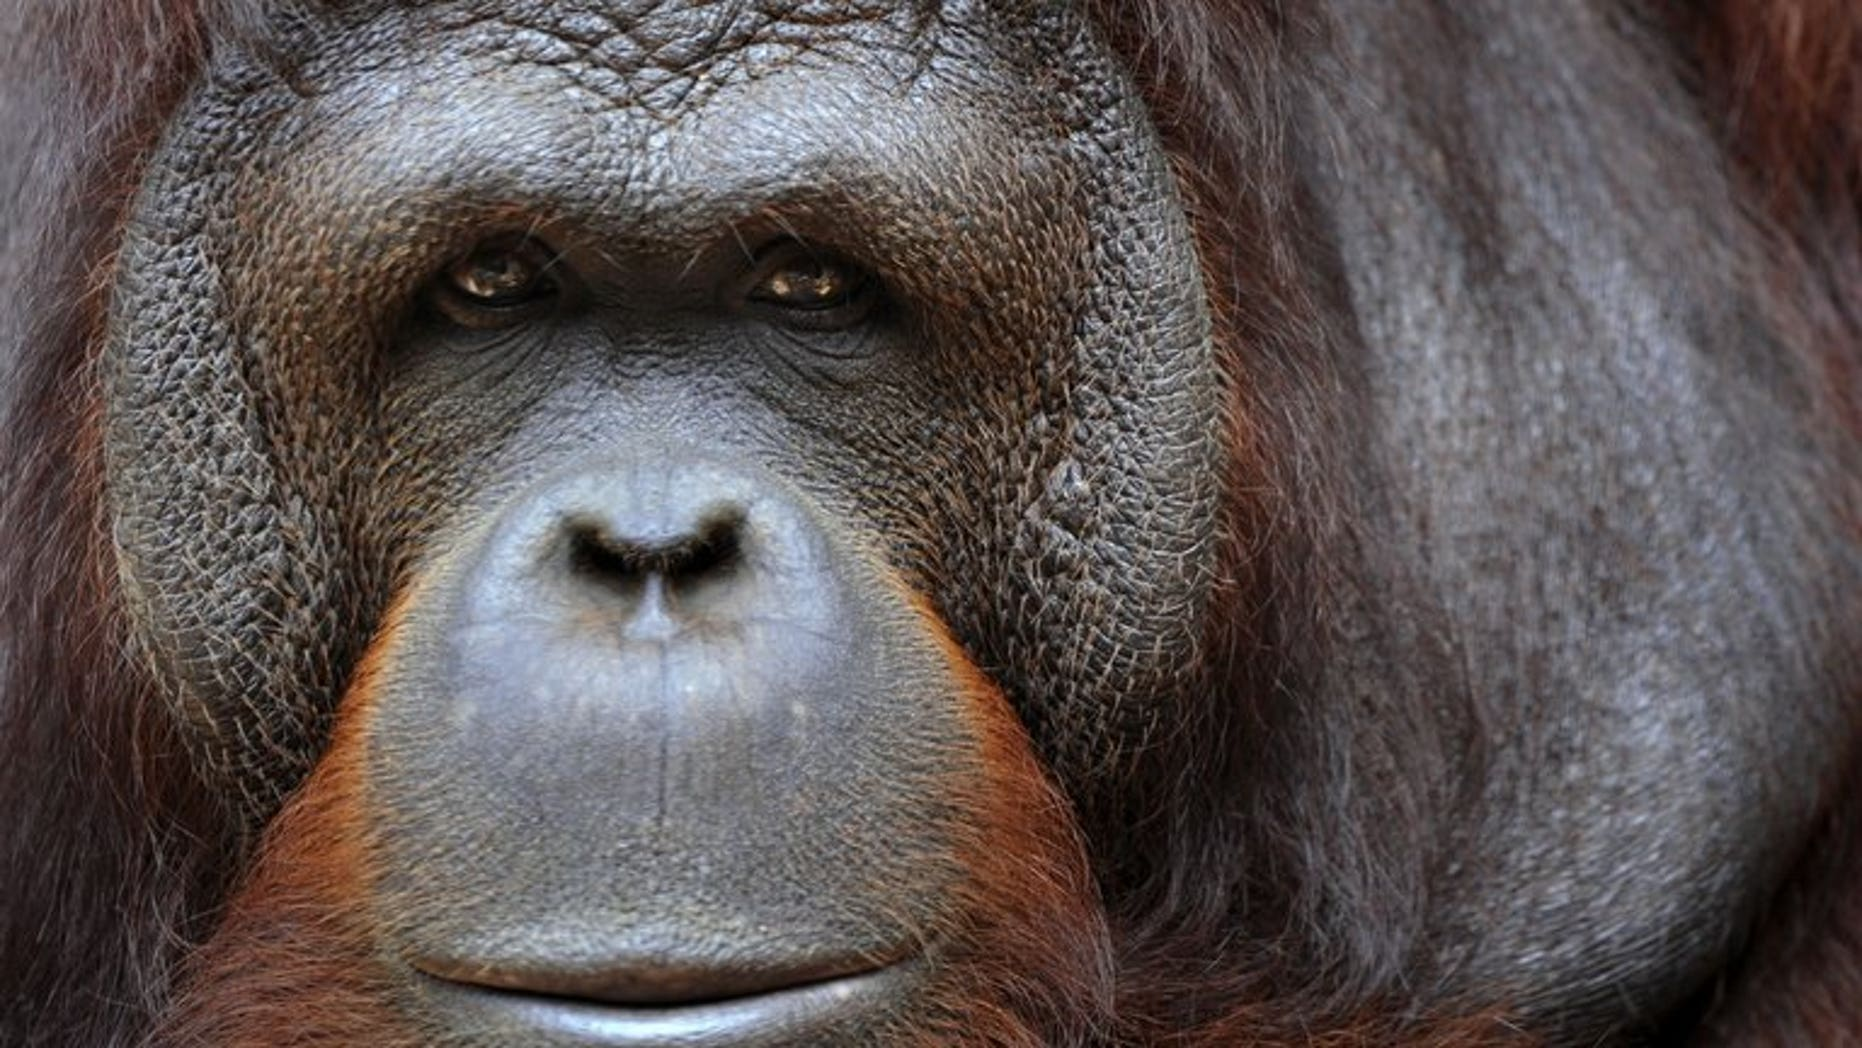 Illustration. An obese orangutan has been put on a strict diet by Malaysian wildlife authorities after two decades of gorging on junk food handed out by tourists, a report said Friday.